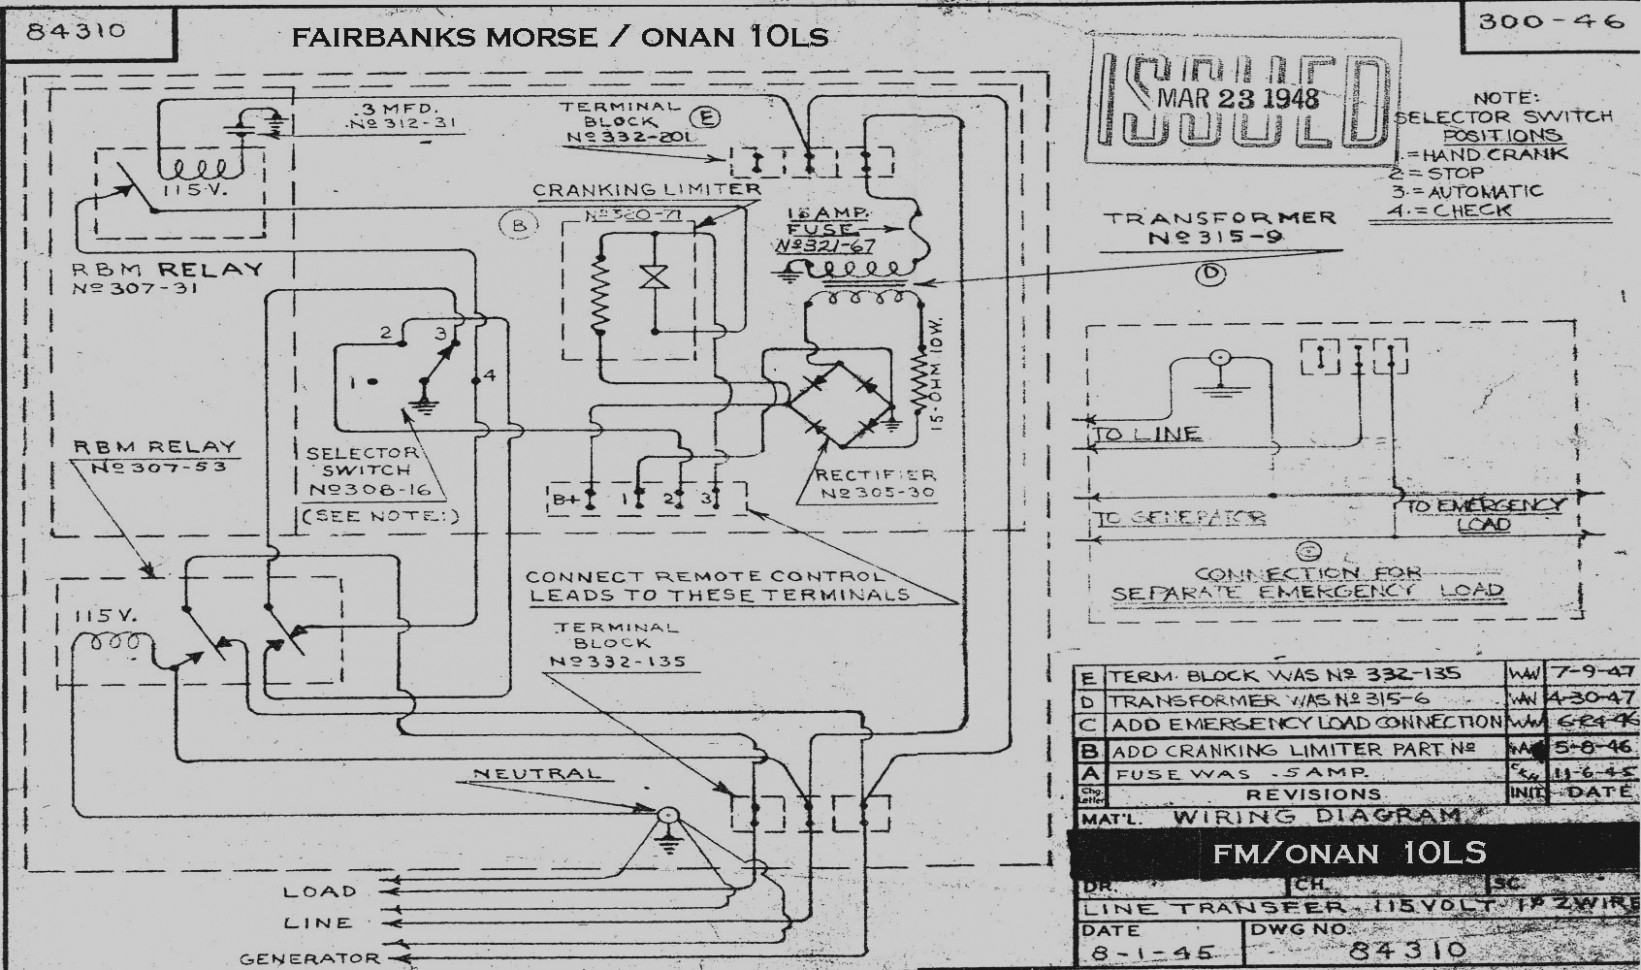 access 4000 generator control panel wiring diagram